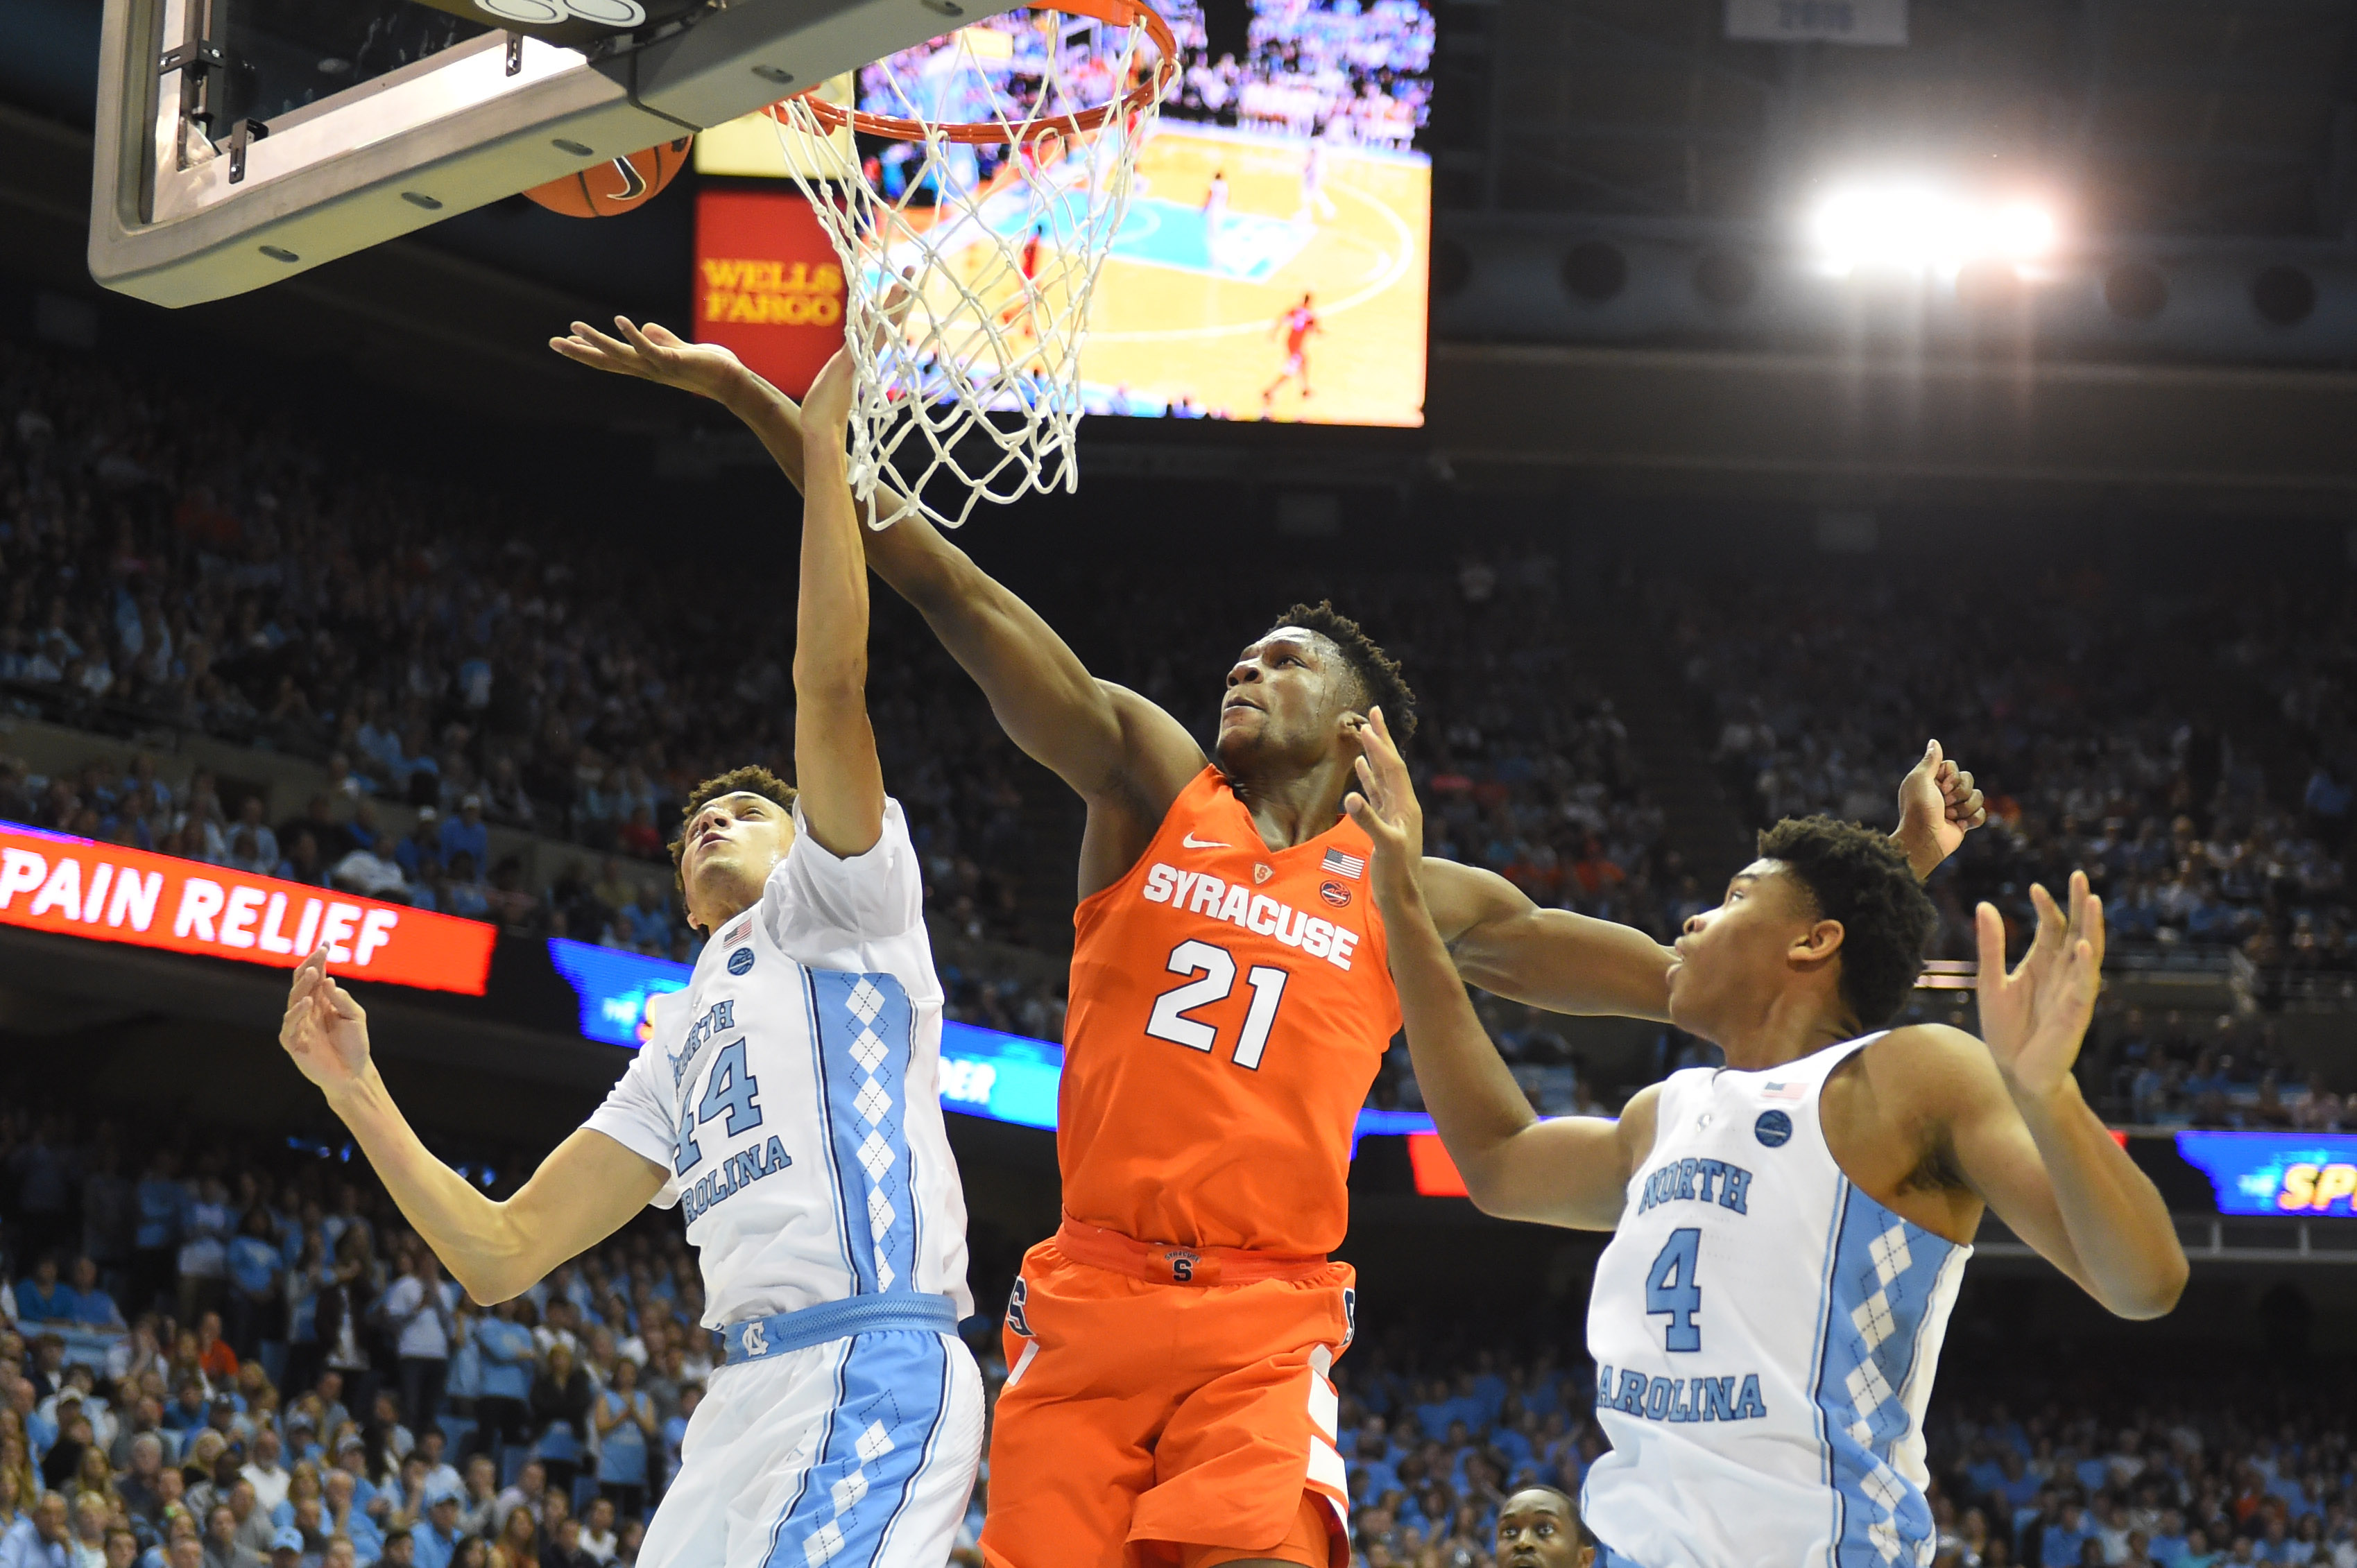 9814173-ncaa-basketball-syracuse-at-north-carolina